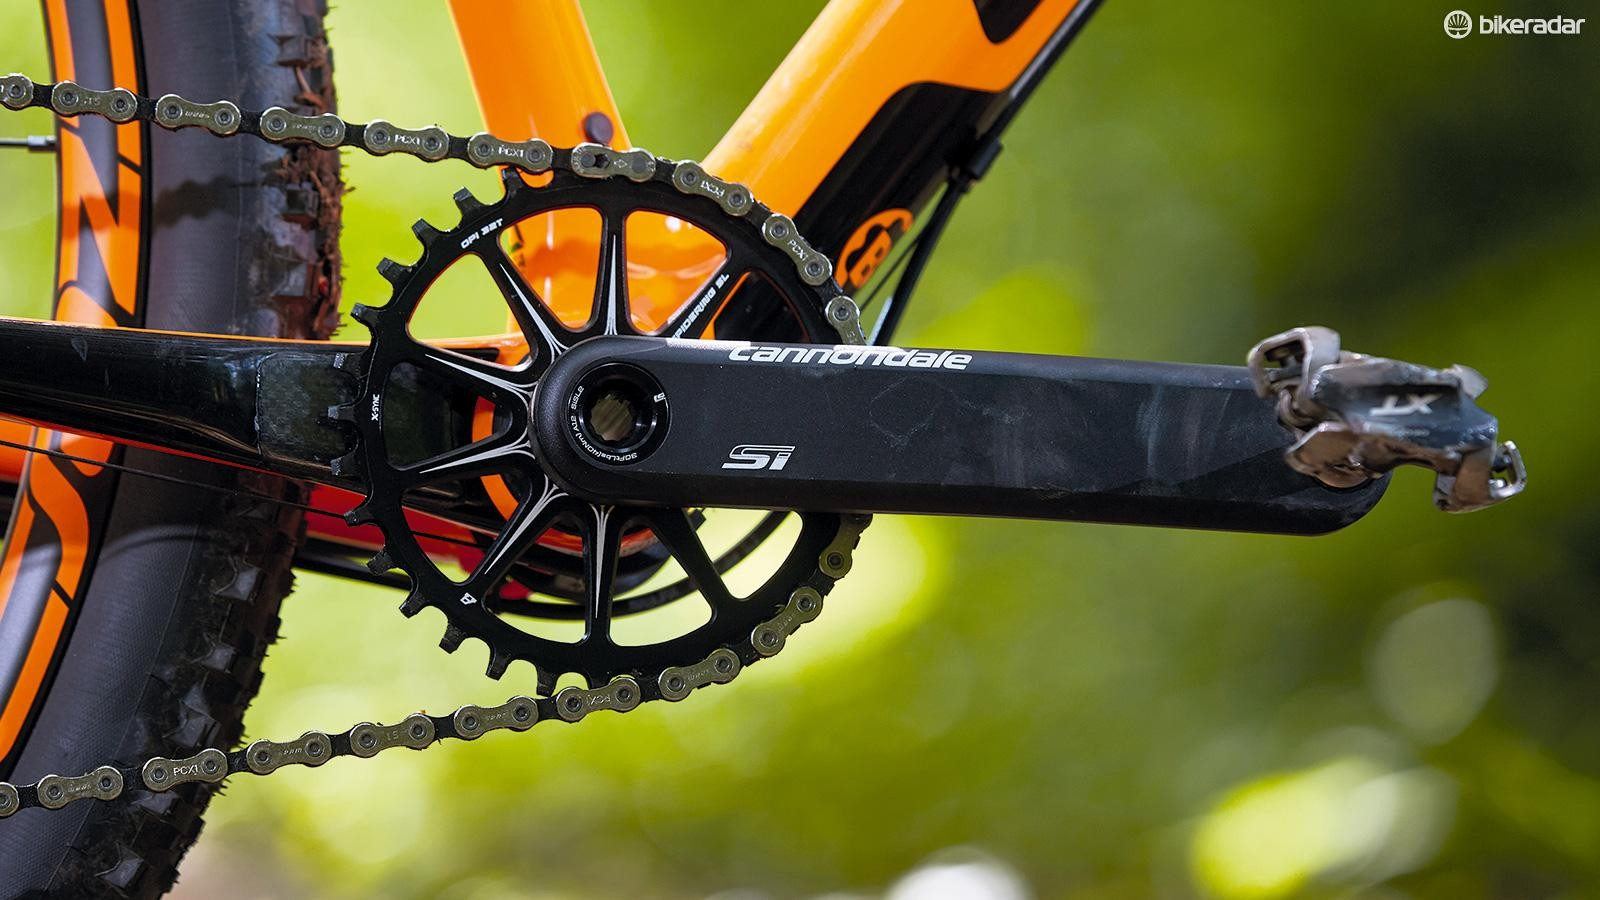 Cannondale's cranks are extremely lightweight and perform superbly